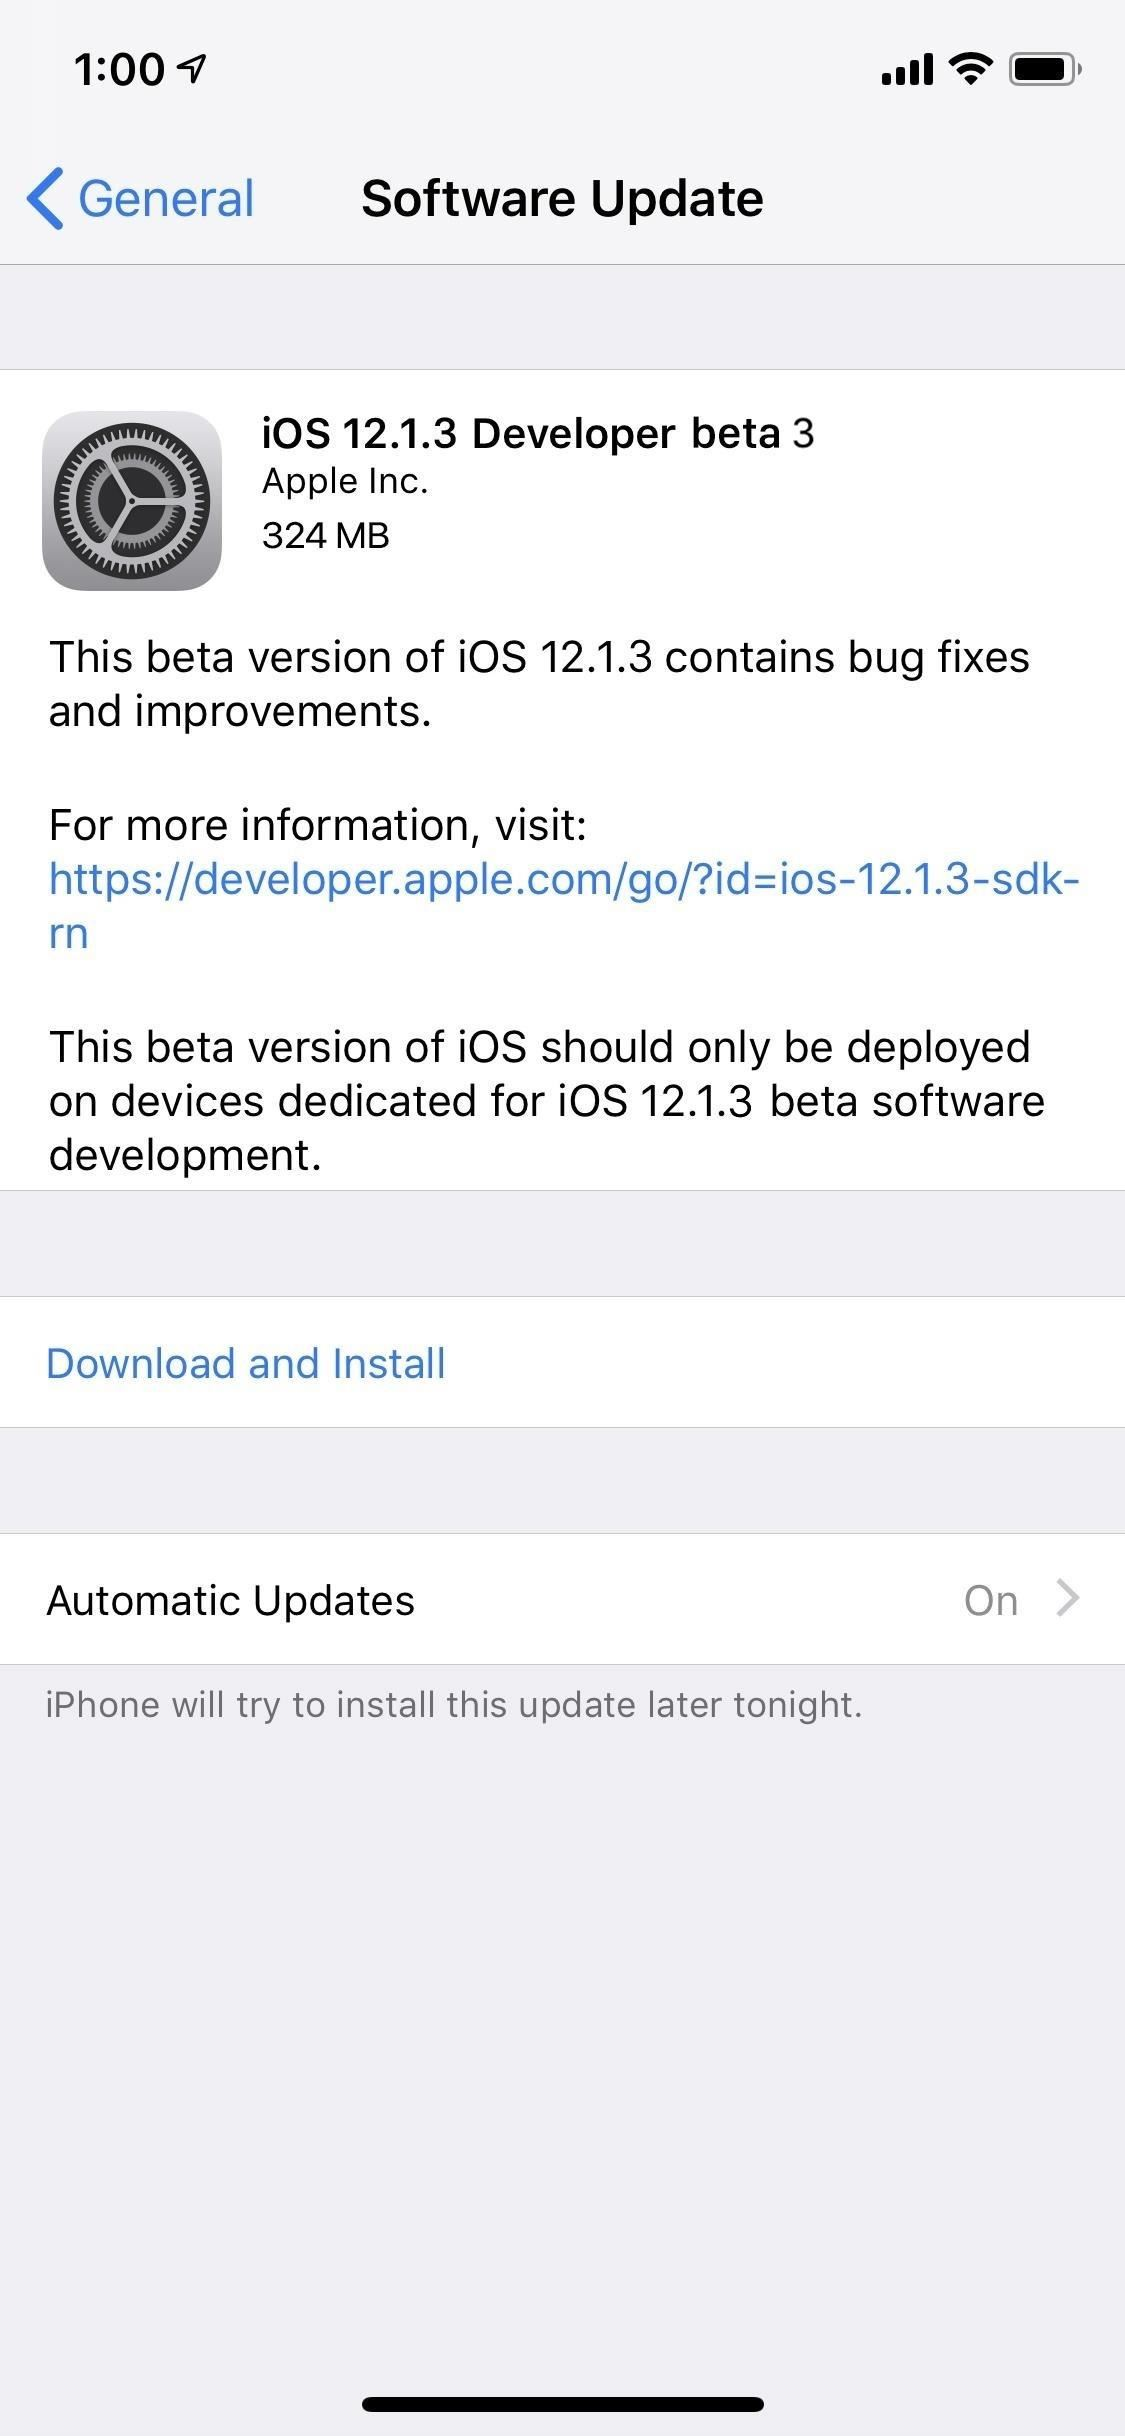 Apple Released iOS 12.1.3 Developer Beta 3 - See What's New